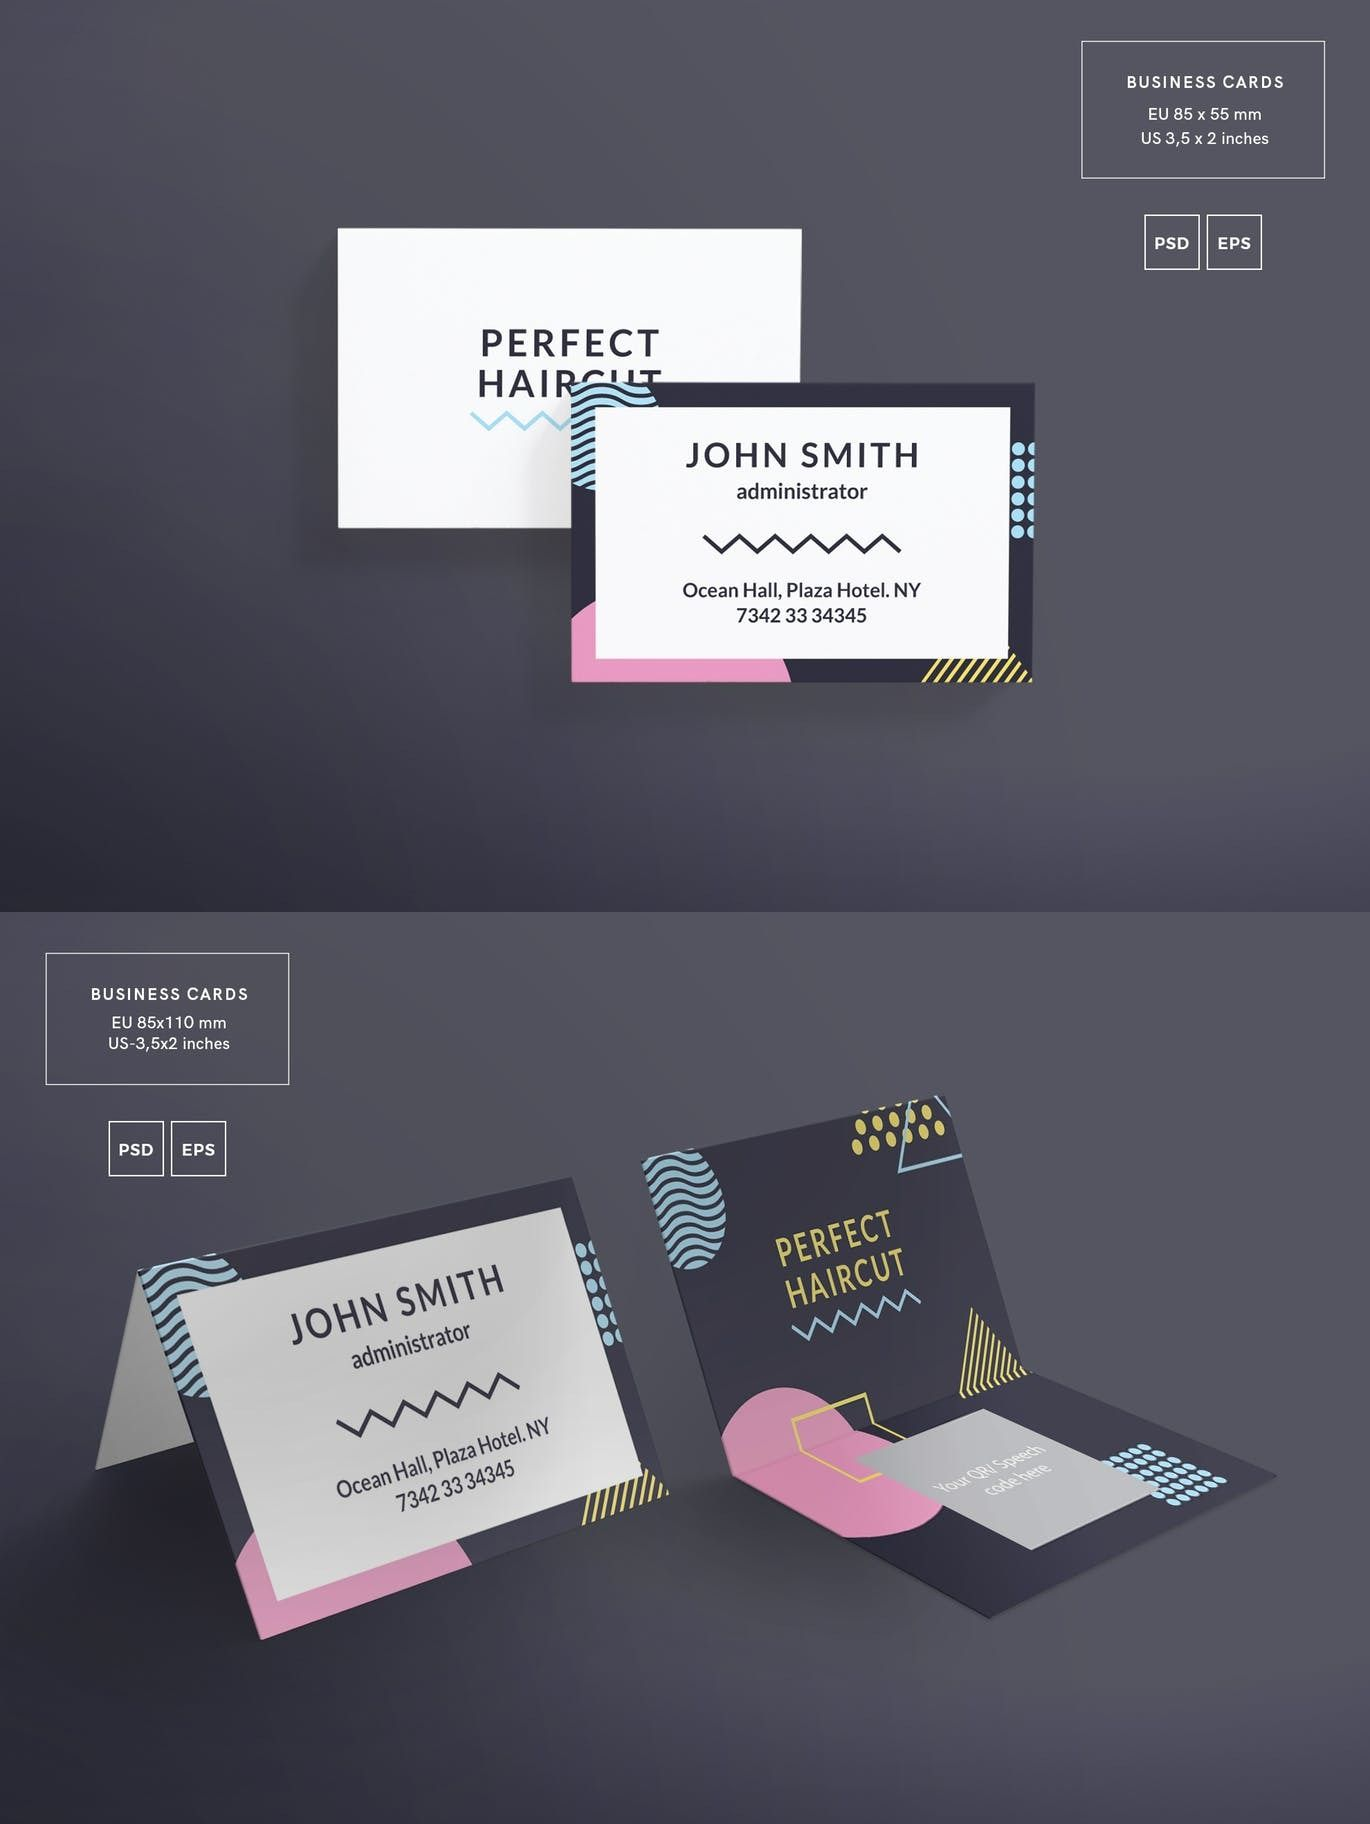 Cartes De Visite Haircut Masterclass Business Card Template Adobe Photoshop Illustrator Hair Design Identit